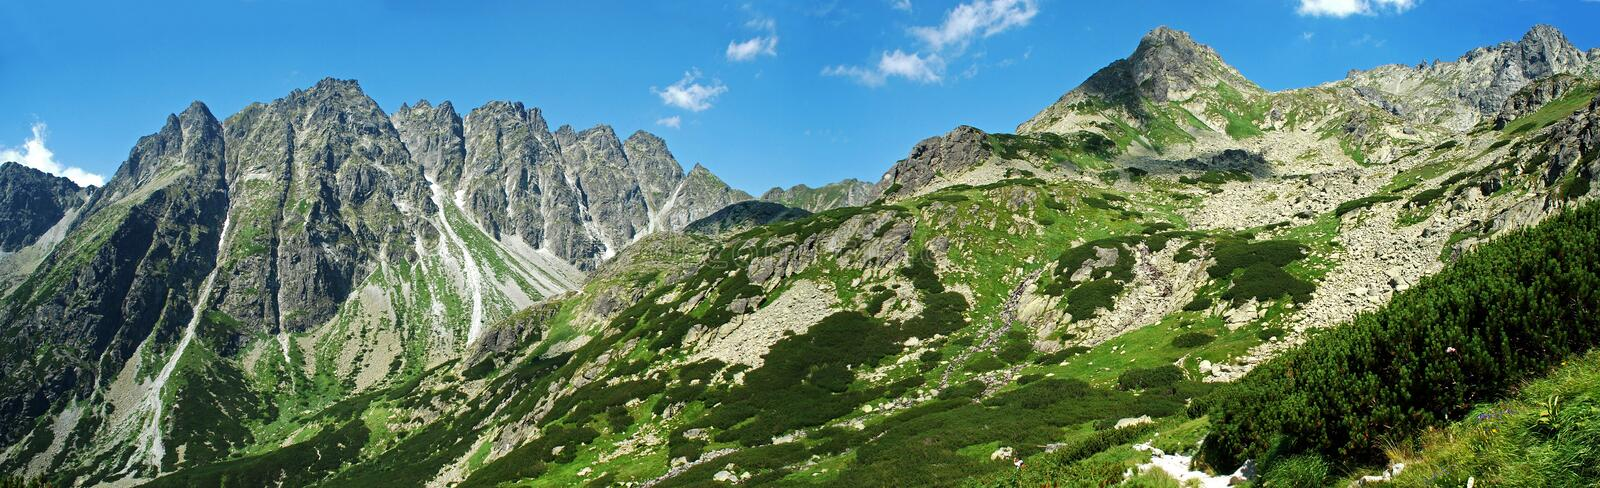 High Tatras Panoramic Picture stock photos